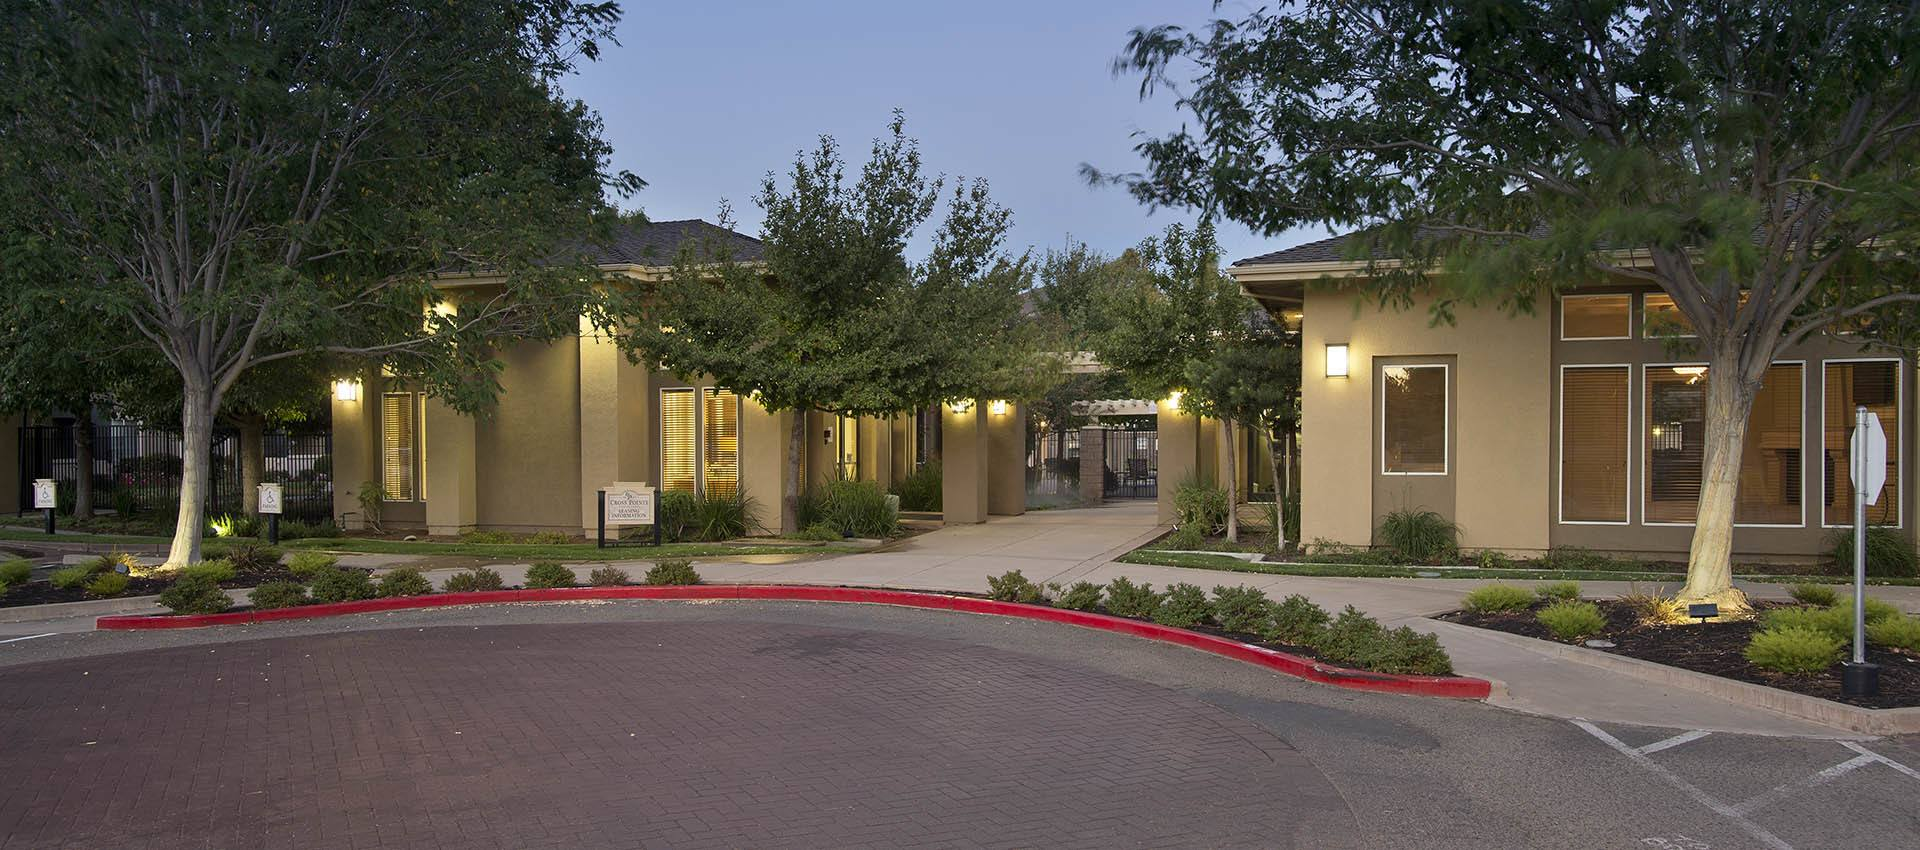 Entrance to the resident clubhouse at Cross Pointe Apartment Homes in Antioch